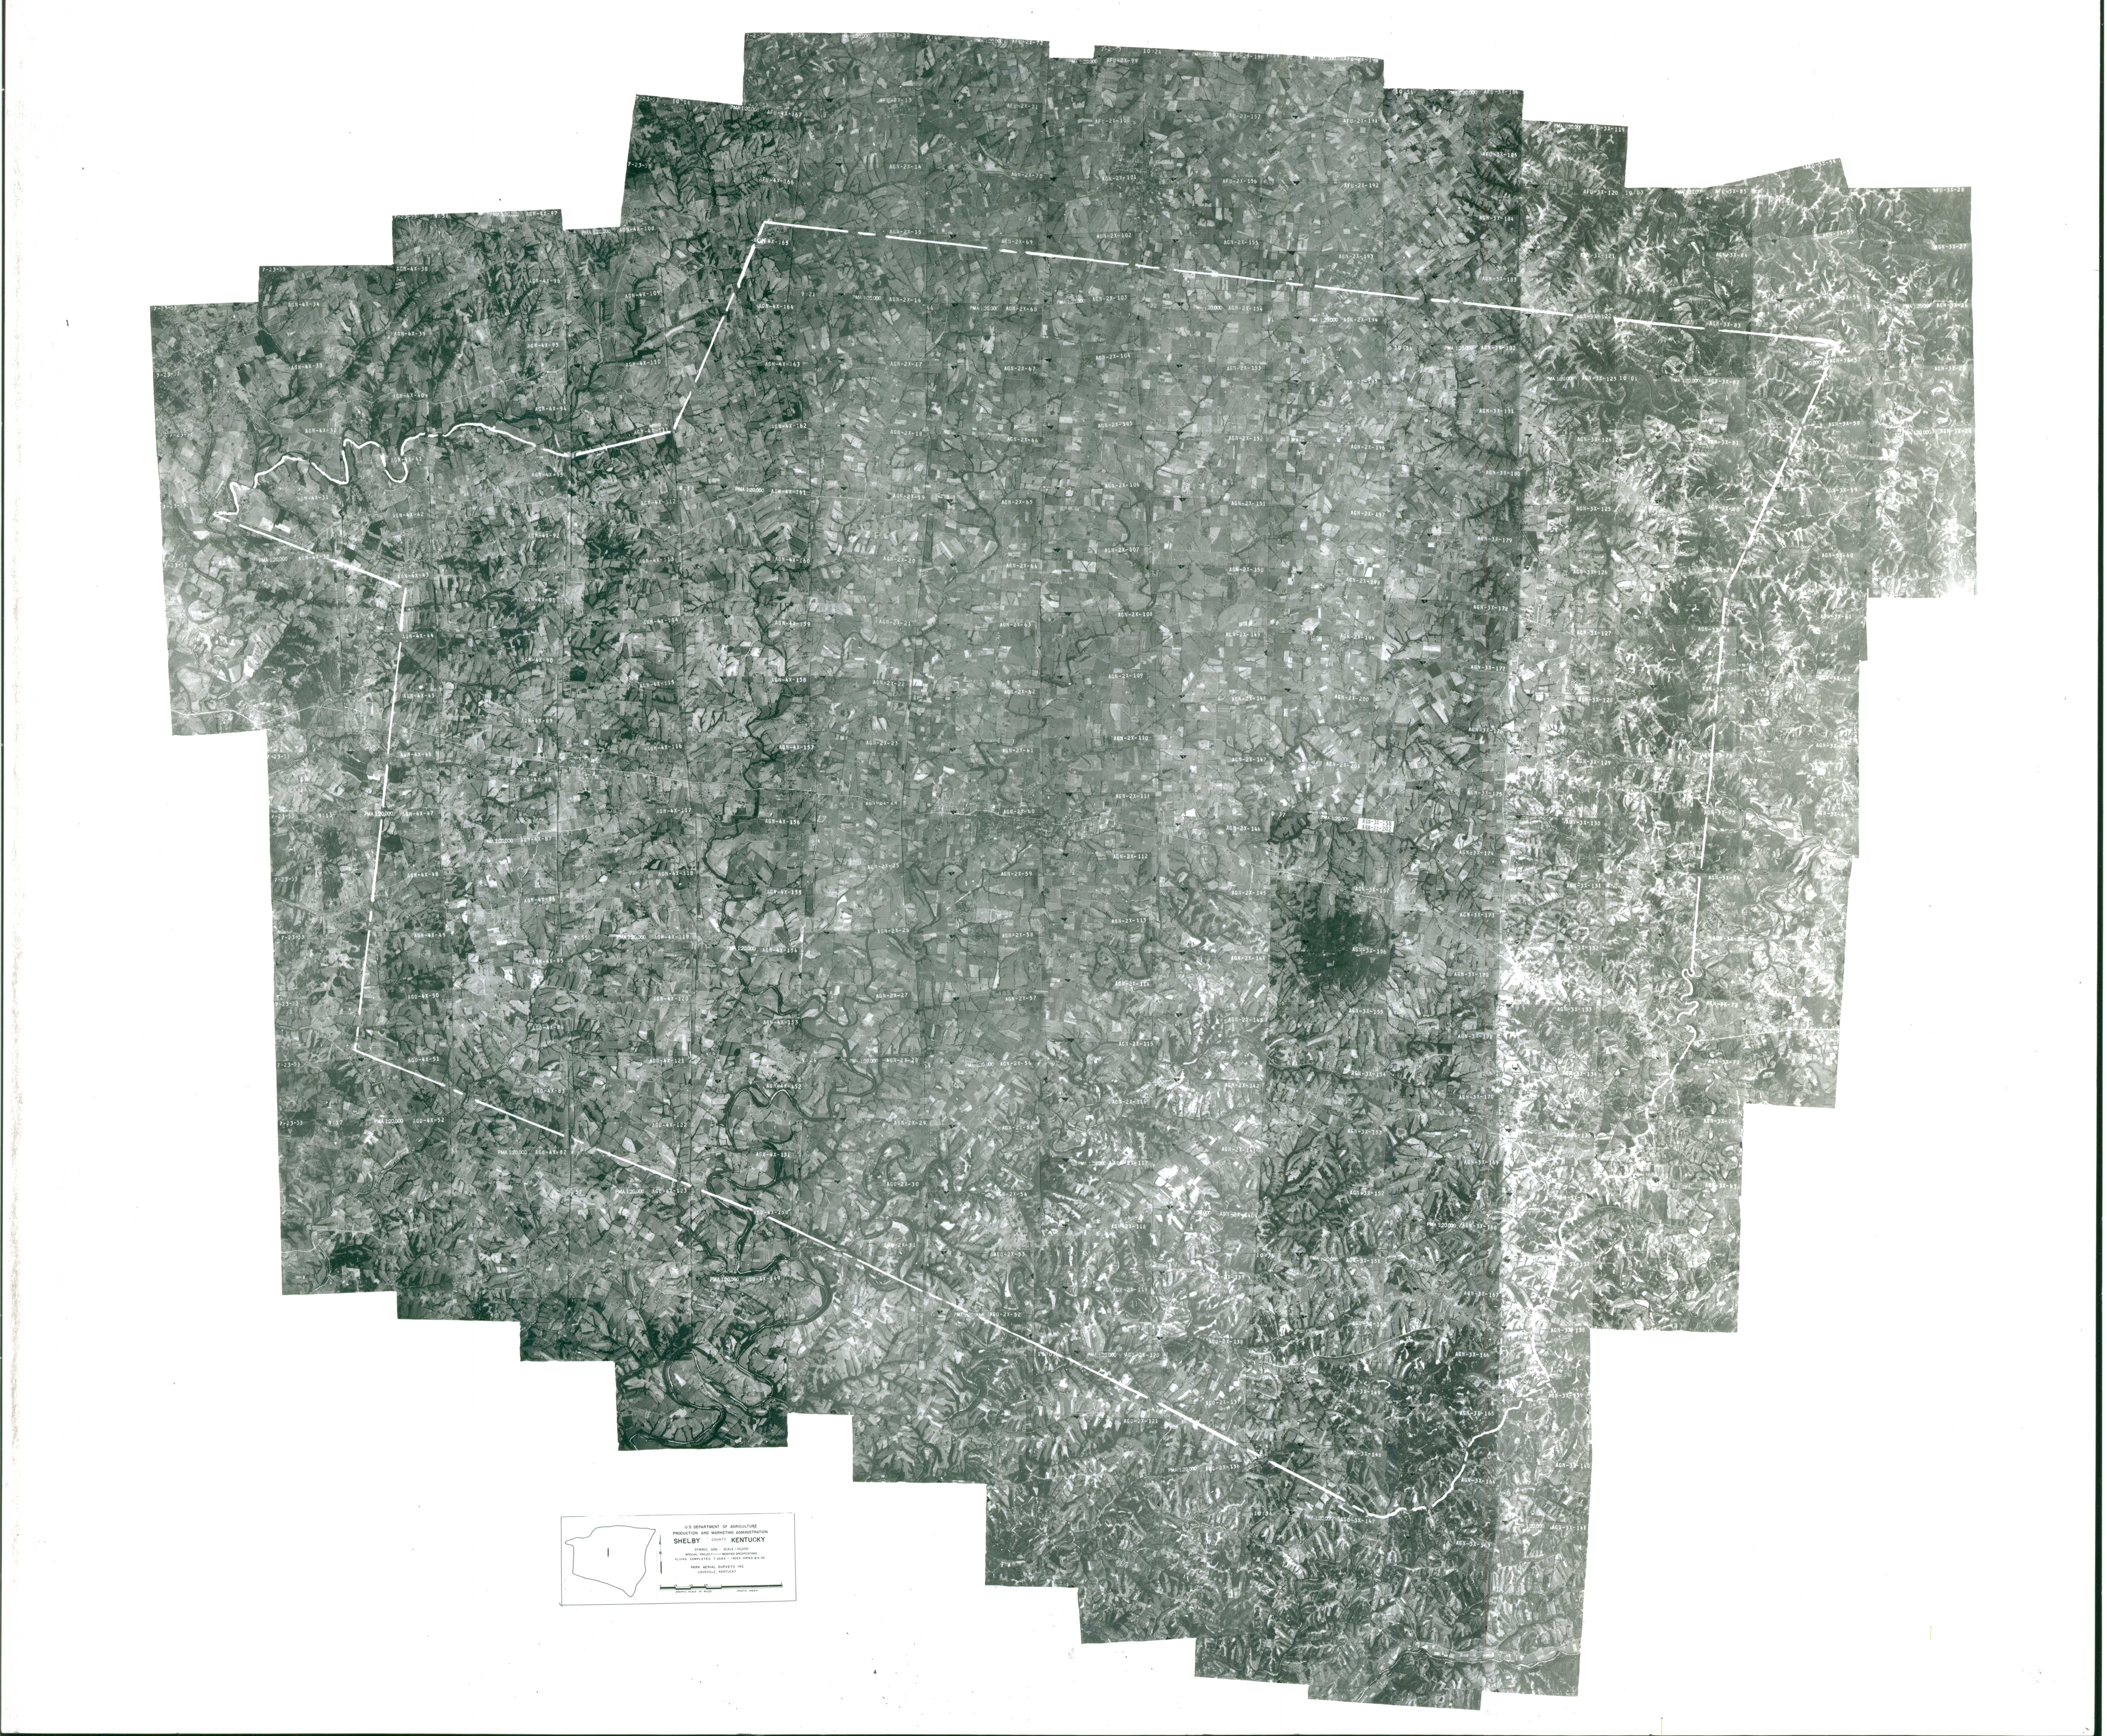 Index to Aerial Photography of Shelby County, Kentucky 1